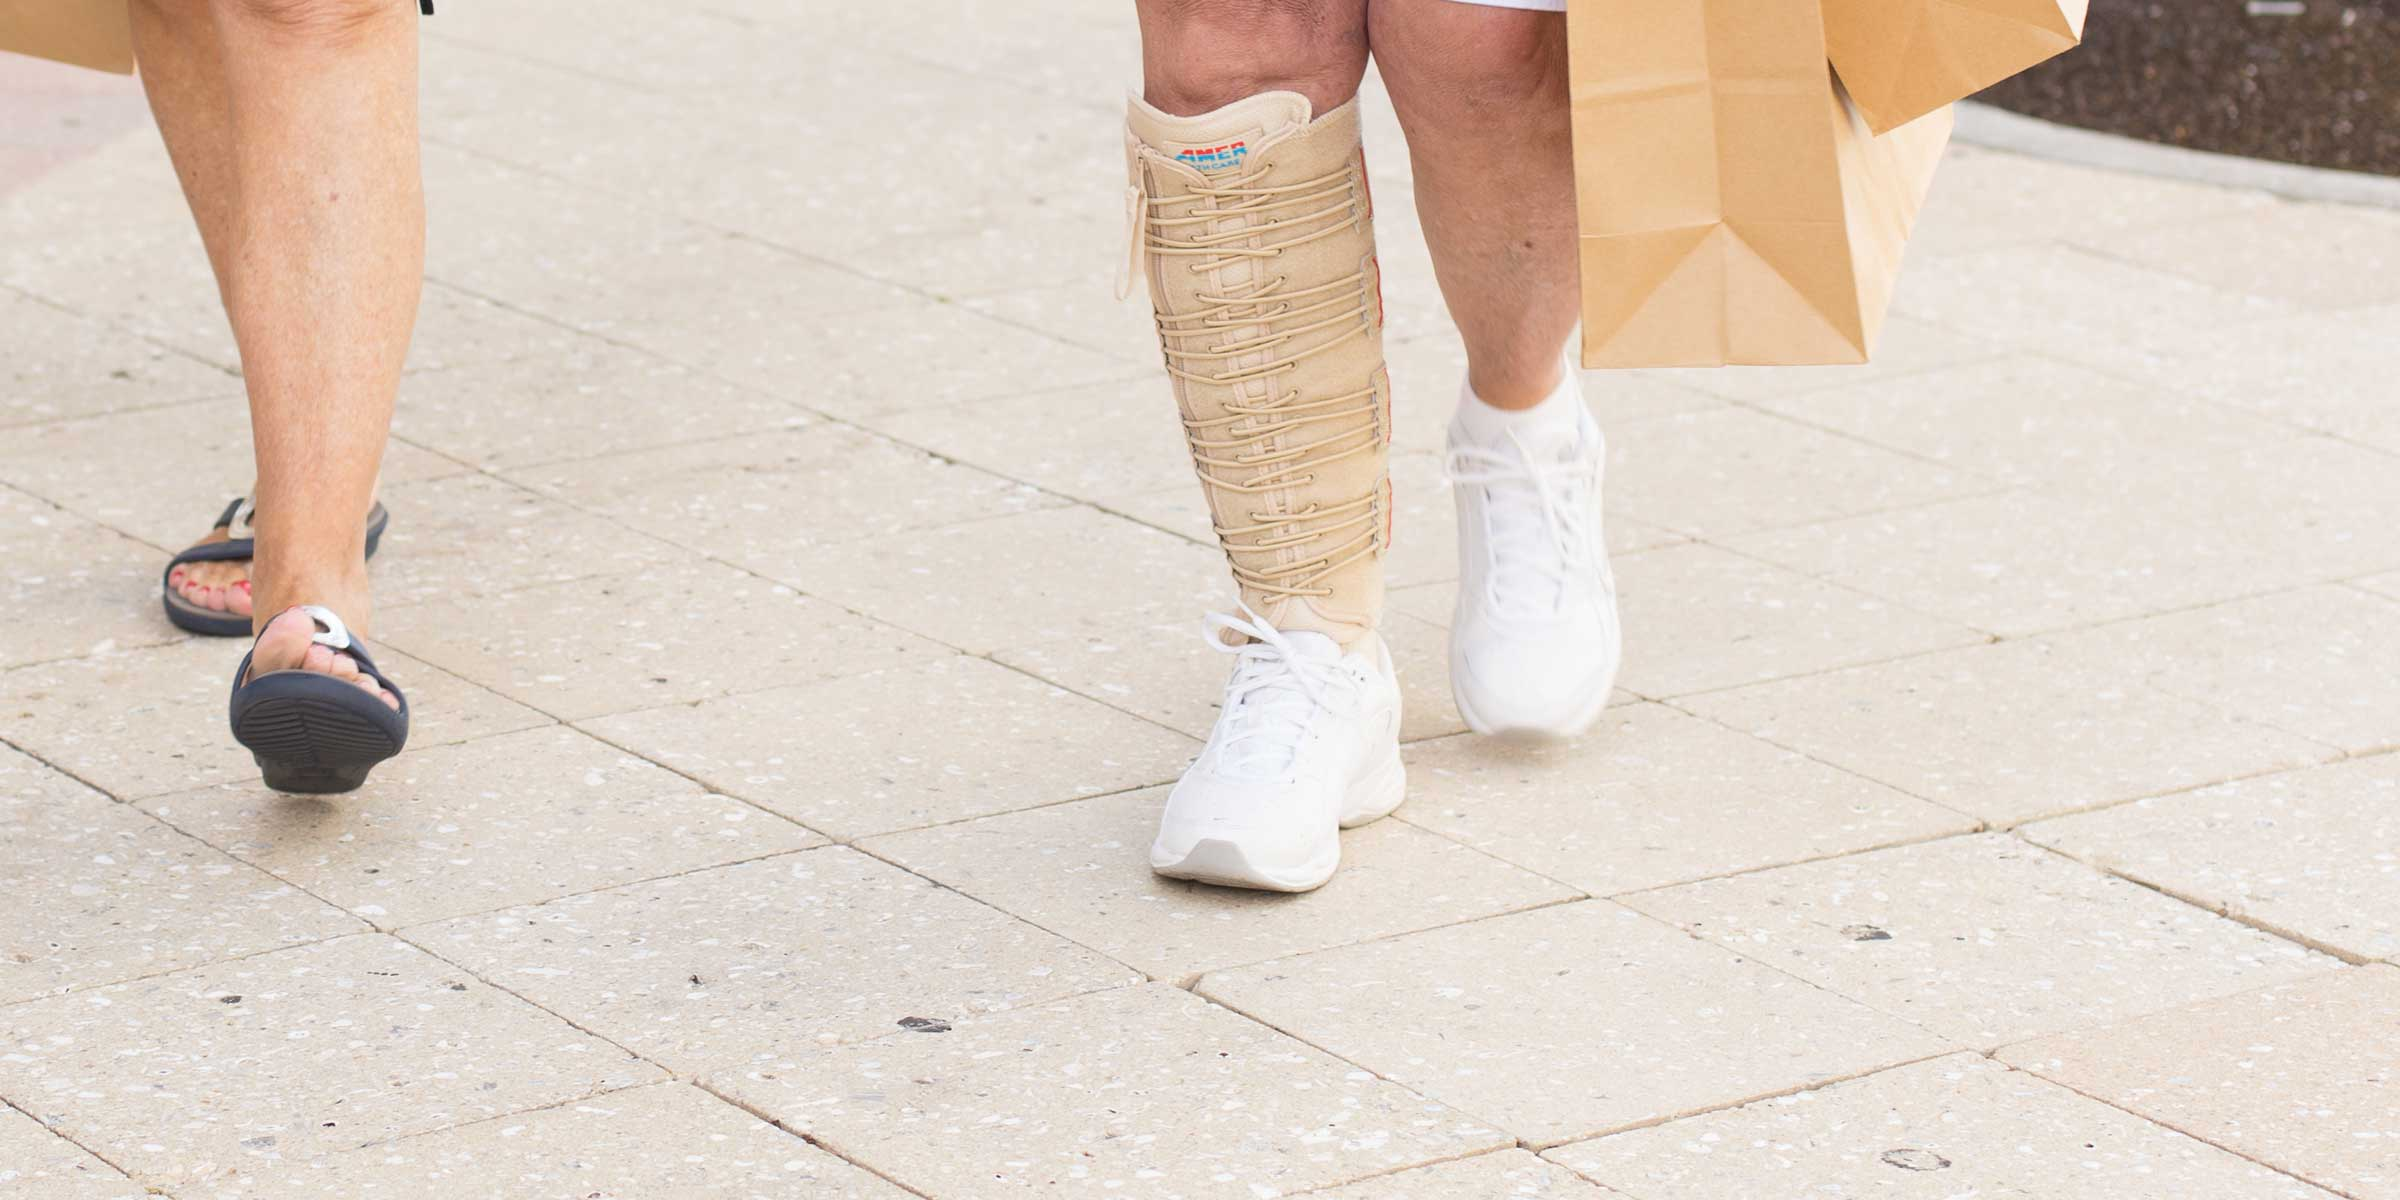 Click the image to visit the Venous Insufficiency page